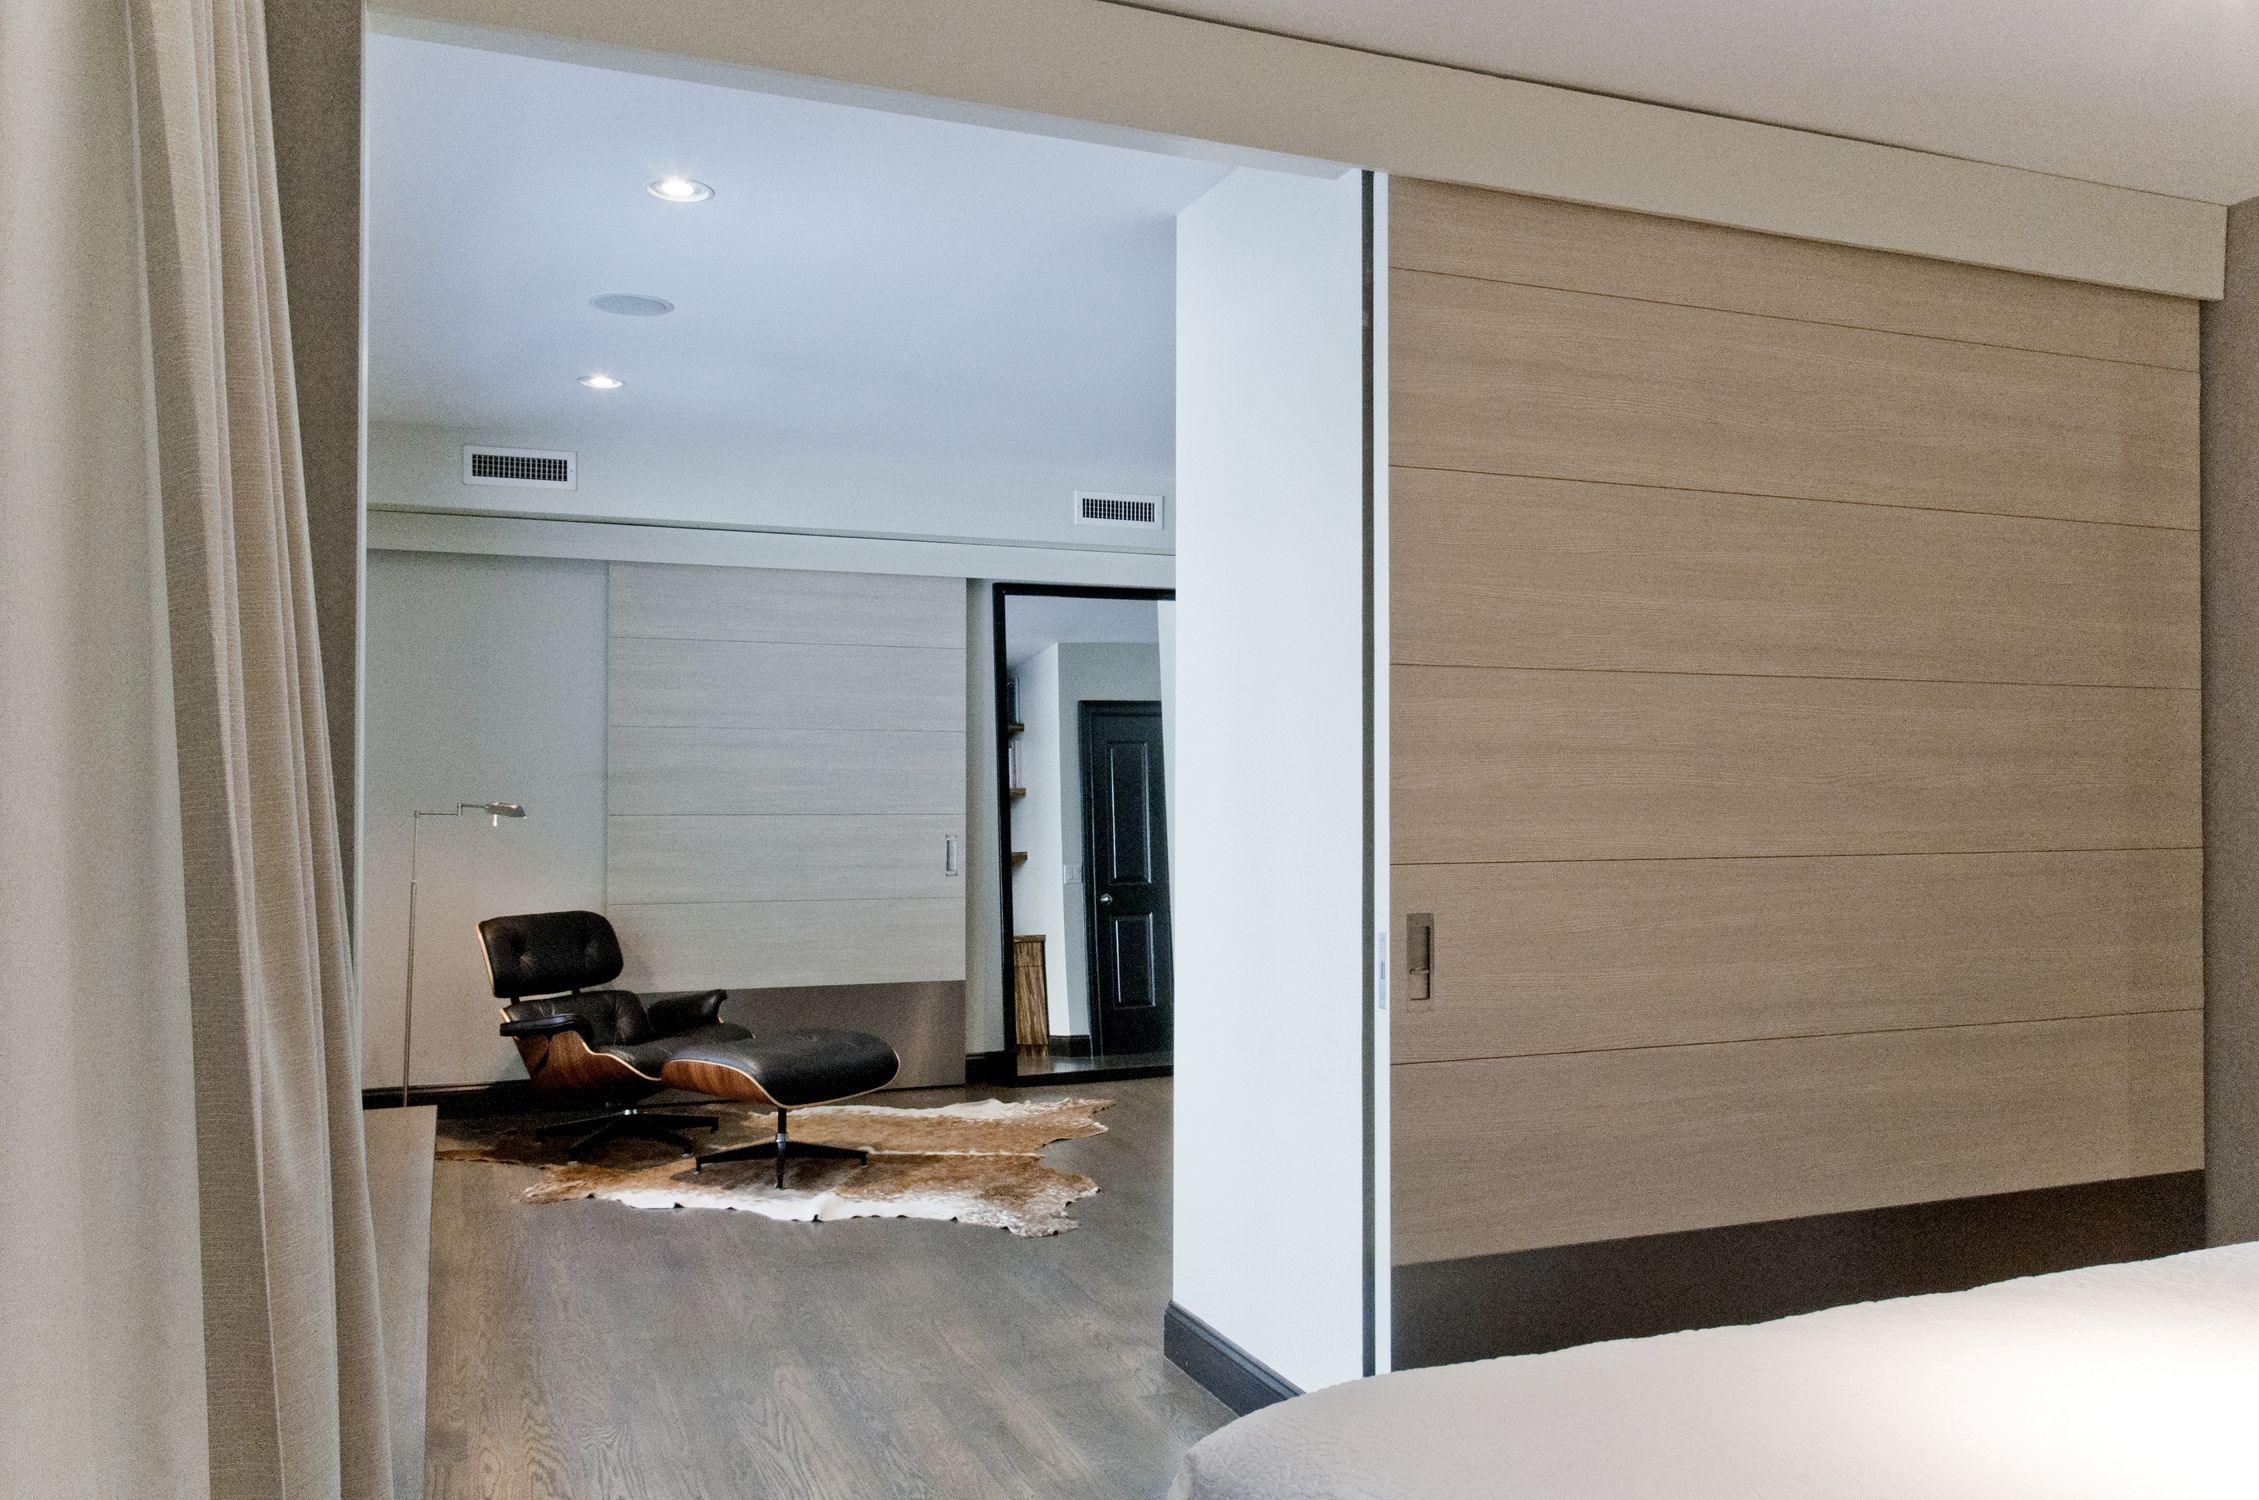 Sliding Mirrored Pocket Doors   Just A Few Months Ago I Went Over To Repair  A Pocket Door That Was Shutting In A Peculiar An